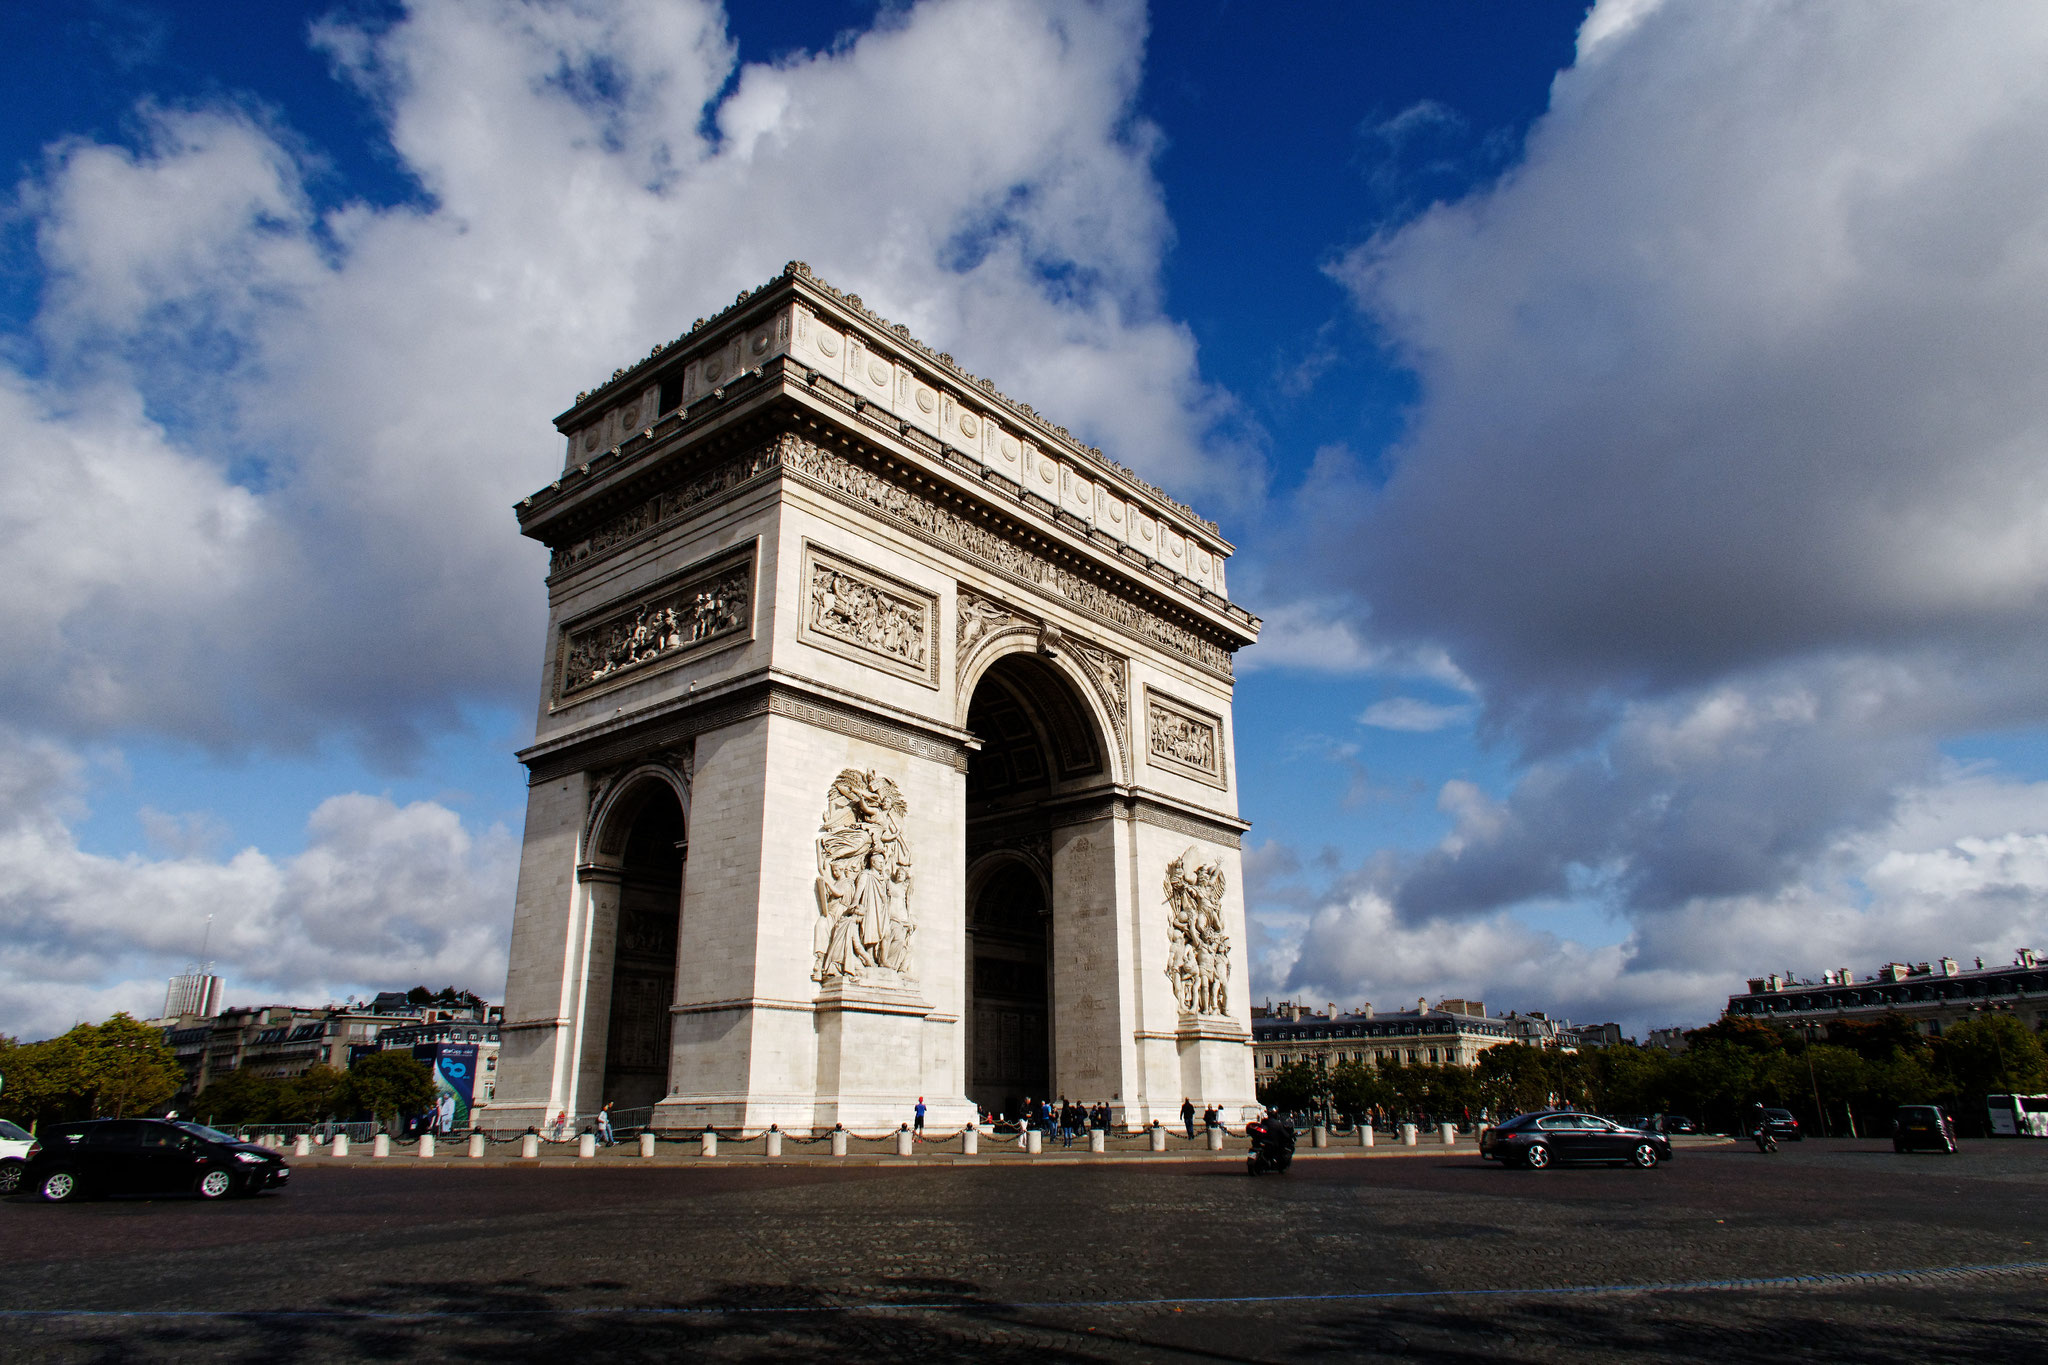 Arc de Triomphe, Paris, 9 septembre 2017